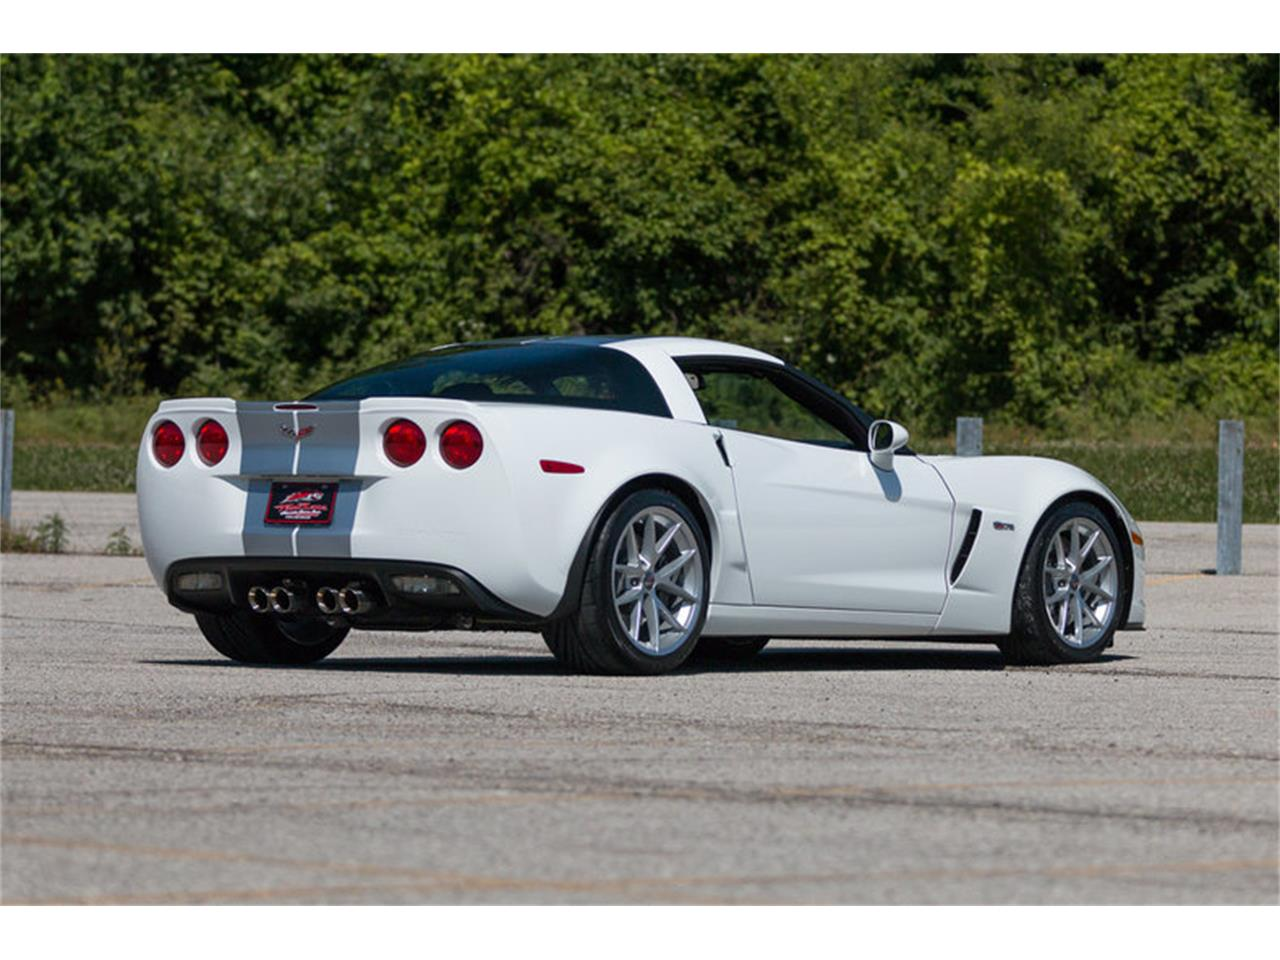 Large Picture of 2013 Corvette Z06 located in Missouri - $59,995.00 Offered by Fast Lane Classic Cars Inc. - LAO0